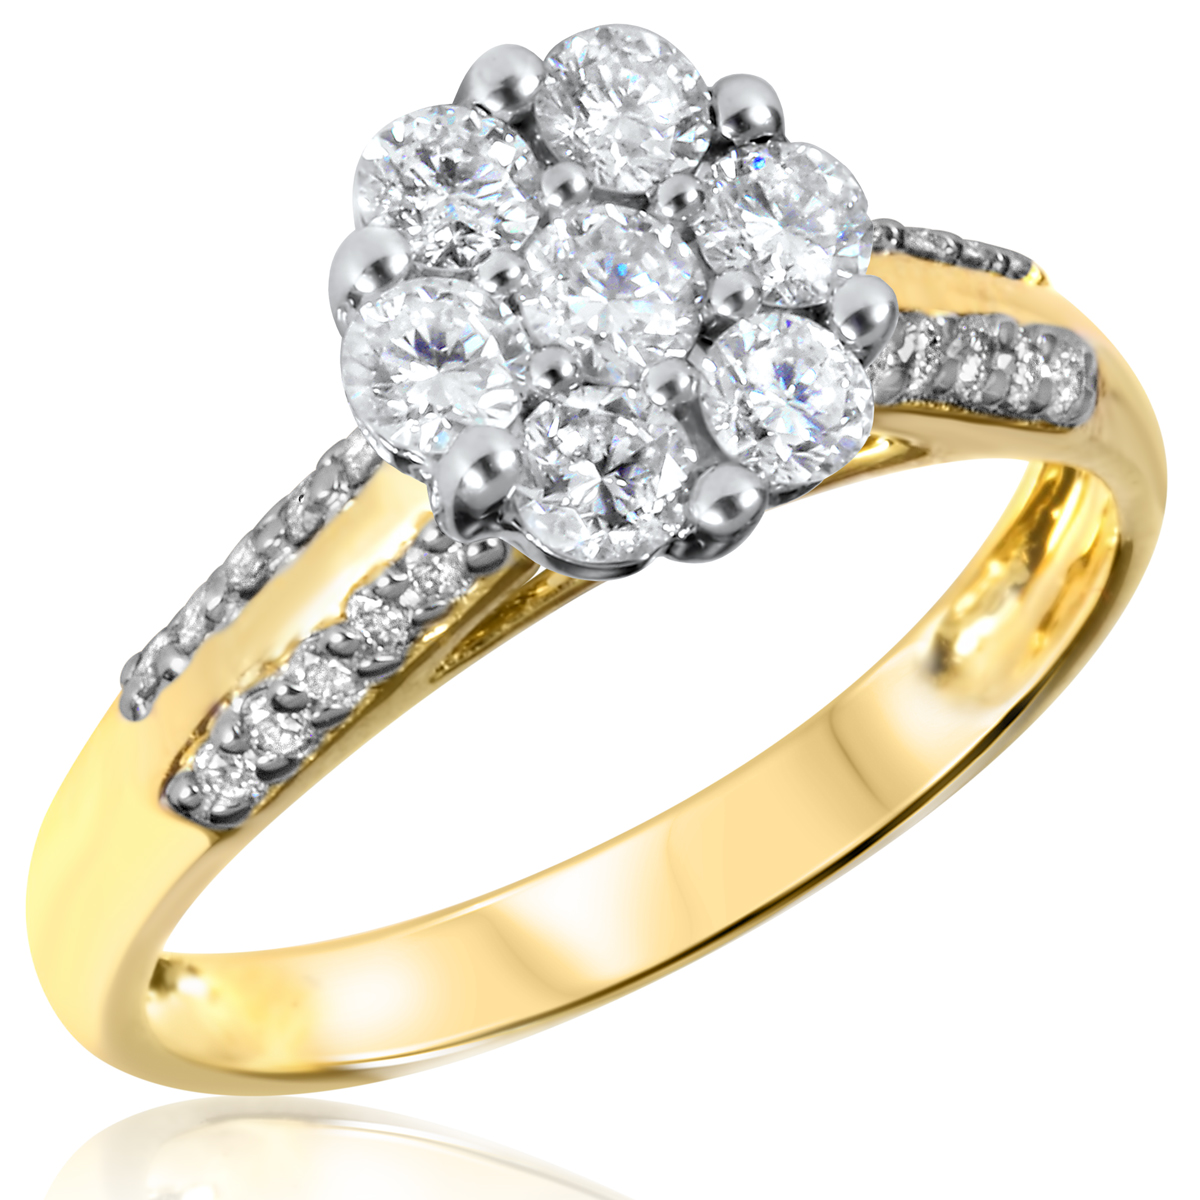 wedding ring sets at jcpenney jcpenny wedding rings Image of Wedding Ring Sets Bride And Groom